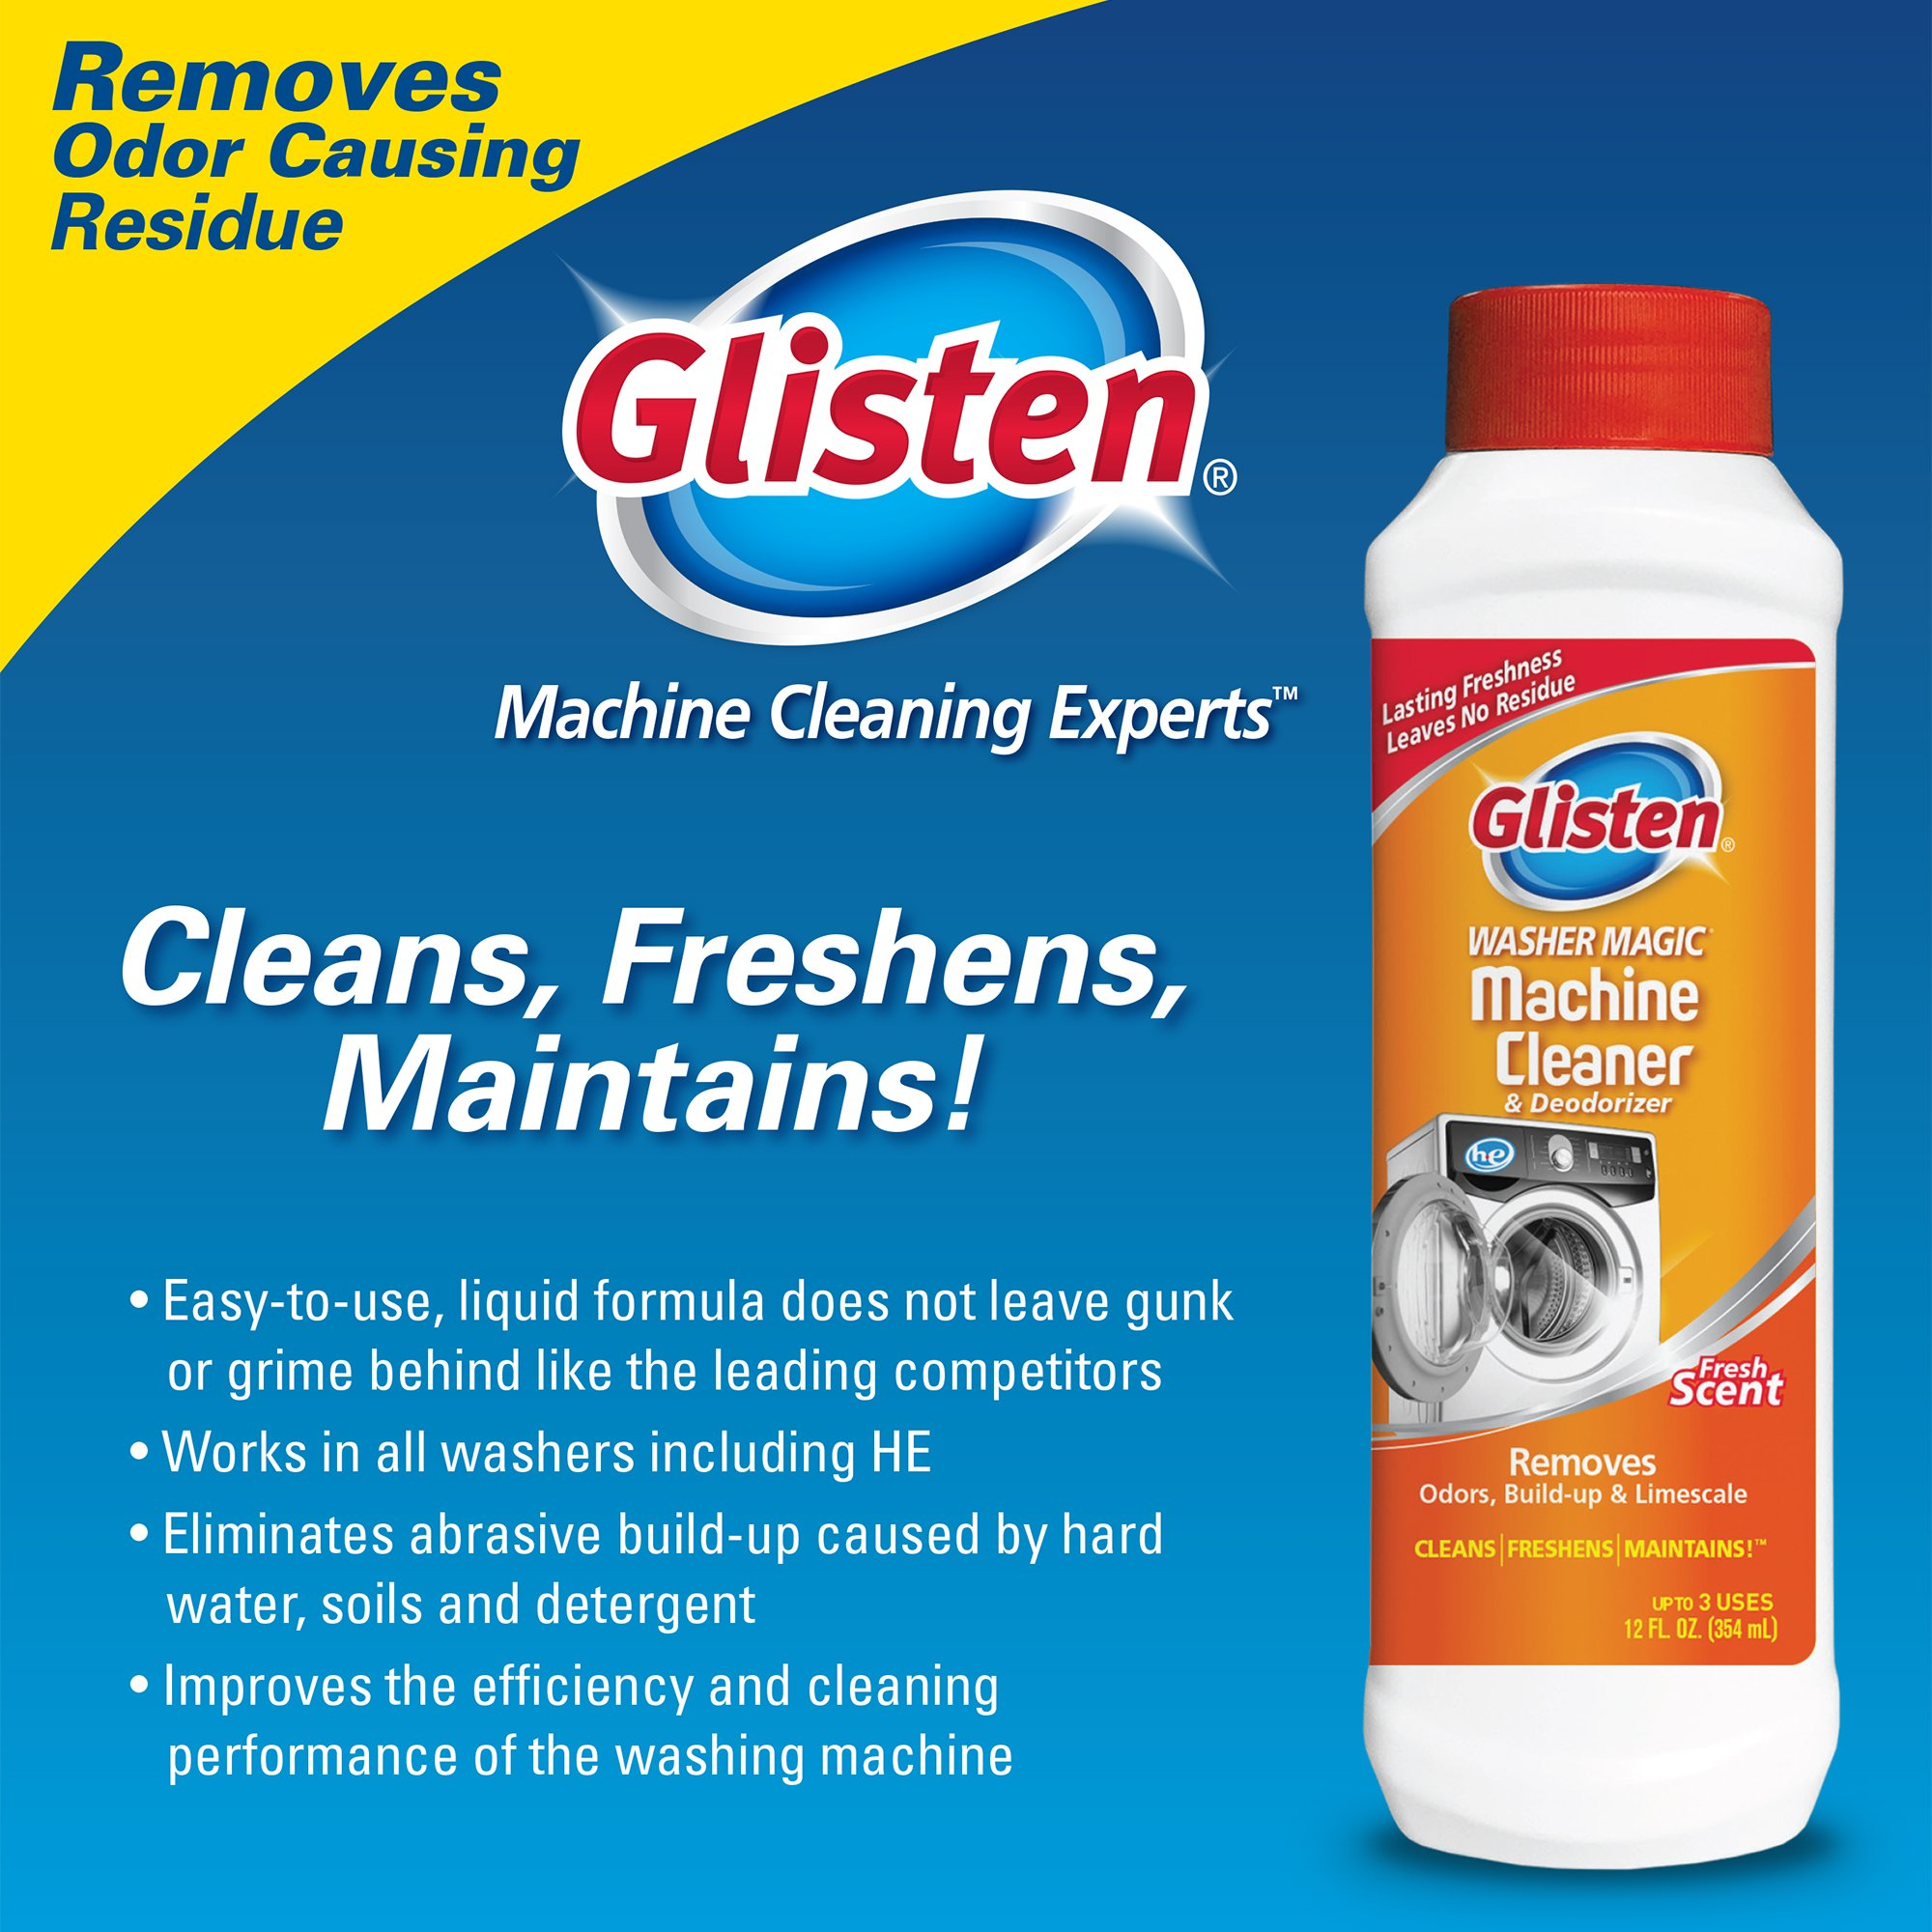 Glisten Washer Magic Washing Machine Cleaner & Deodorizer, 12 Fl. Oz. Bottle, 12 Pack by Glisten (Image #7)